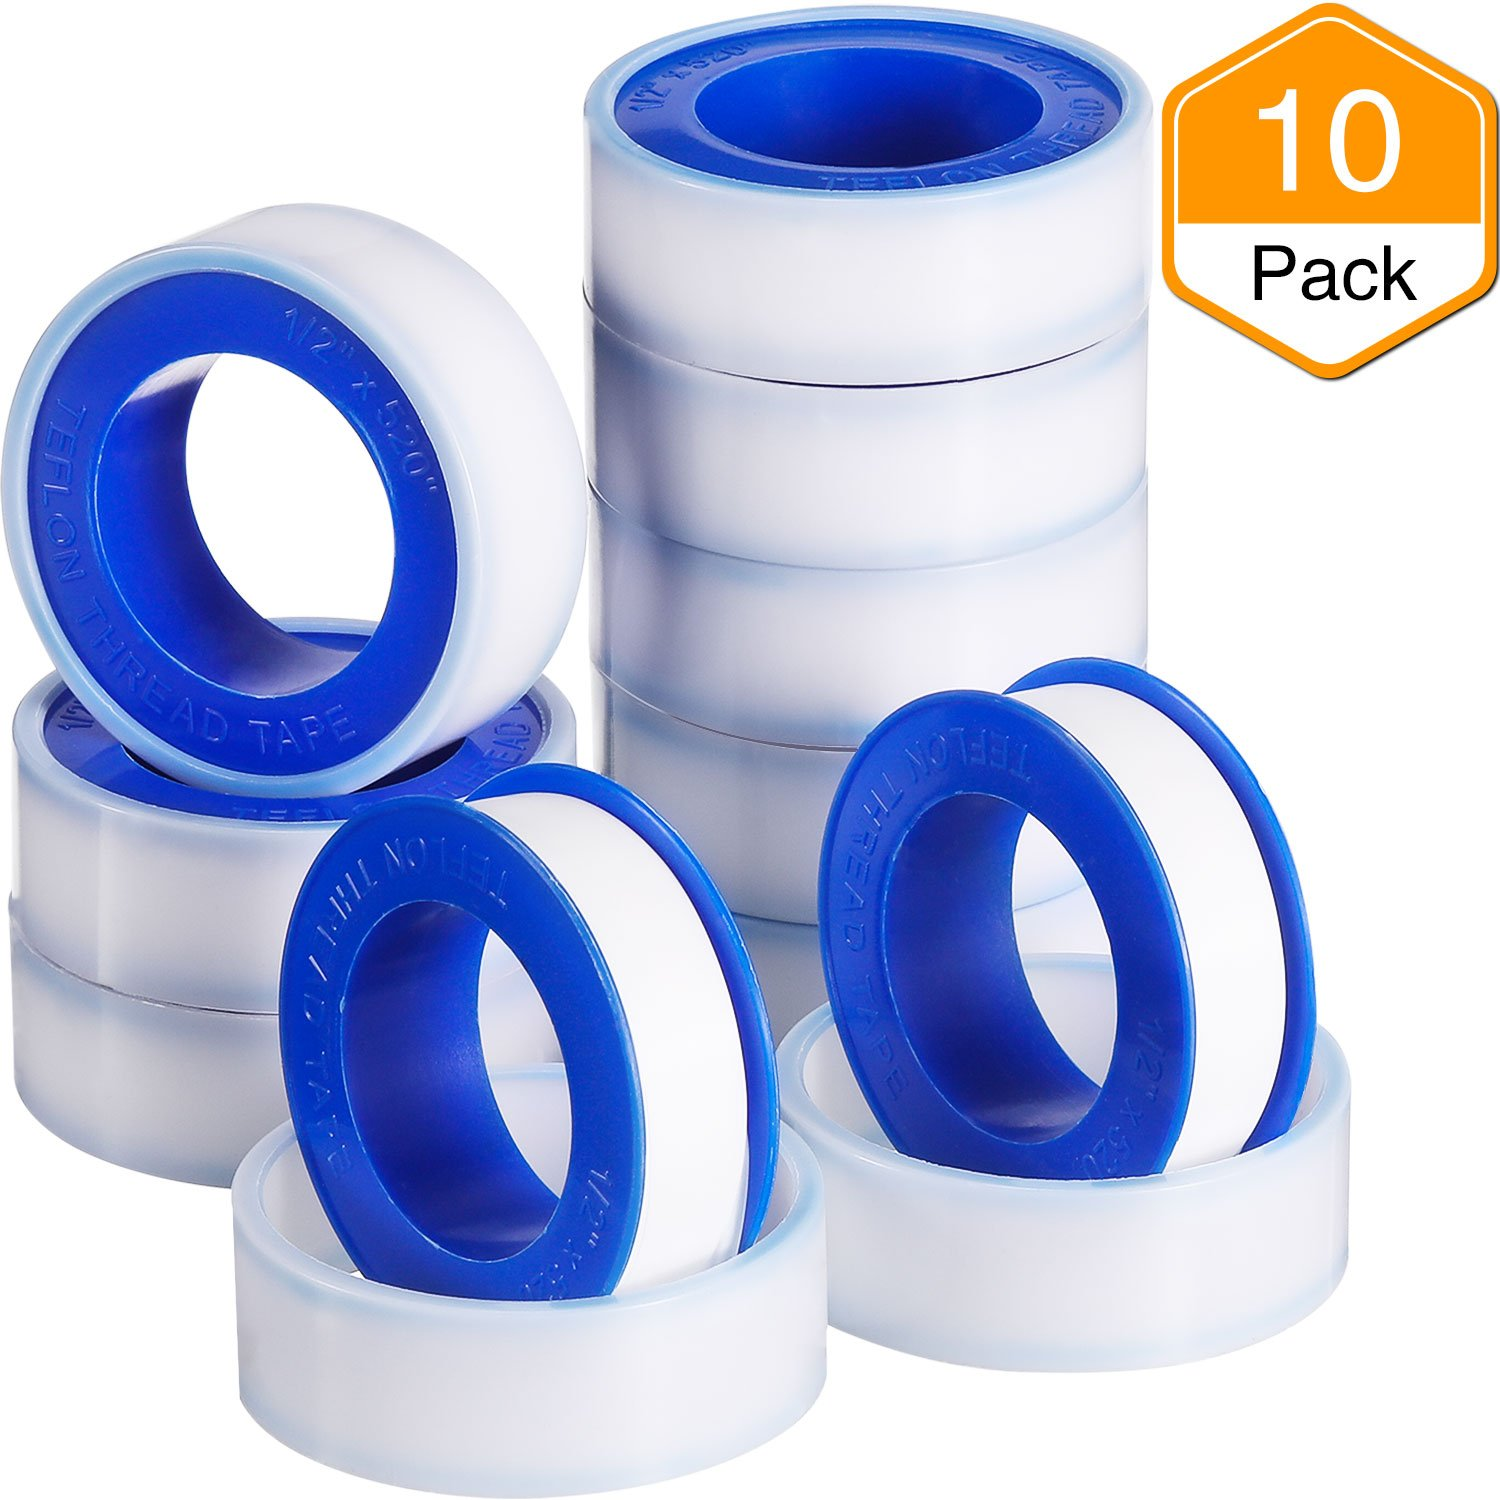 Details about Skylety 10 Rolls Thread Seal Tapes, PTFE Pipe Sealant Tape  (1/2 by 520 Inches)